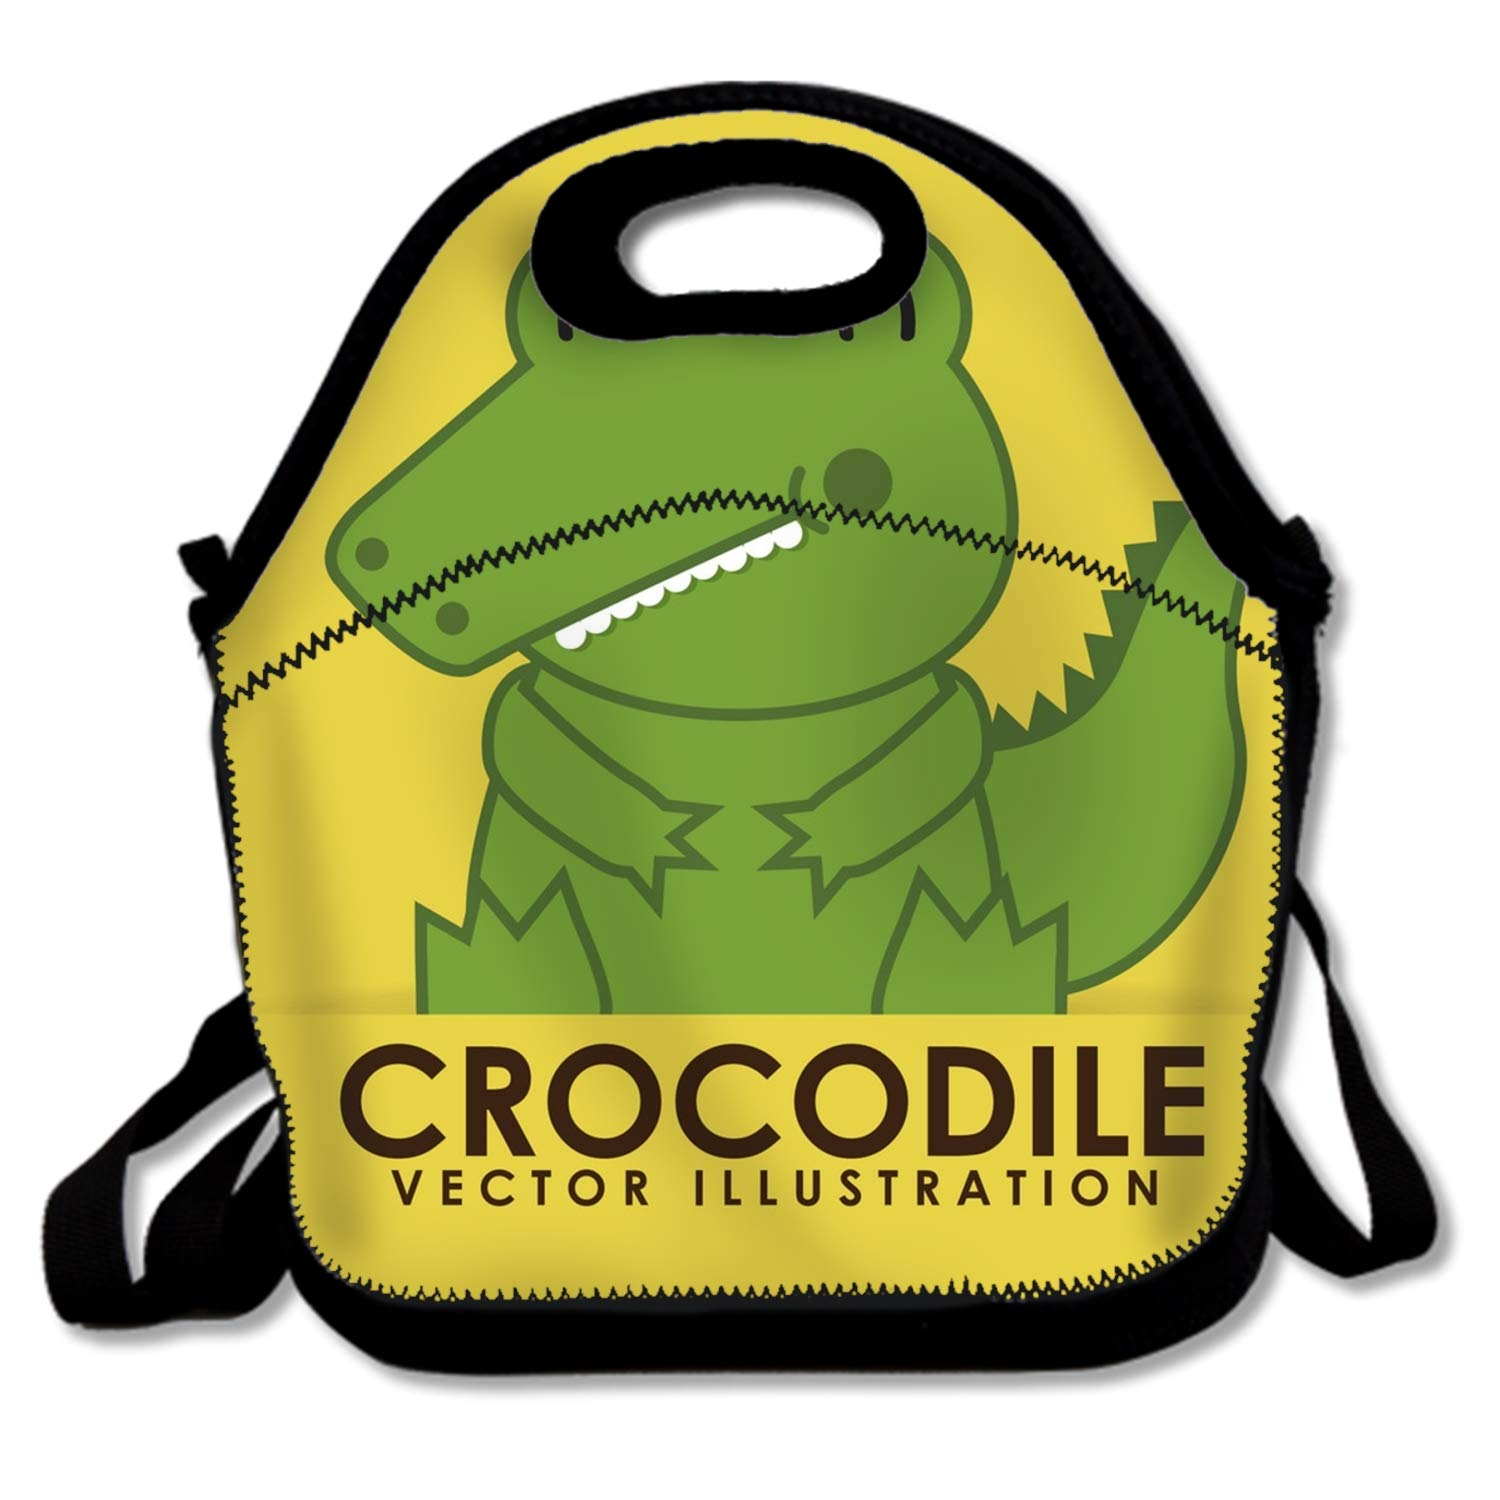 Cute Lunch Bag/Lunch Box/Lunch Tote/Picnic Bags Insulated Cooler Travel Organizer Crocodile Cute